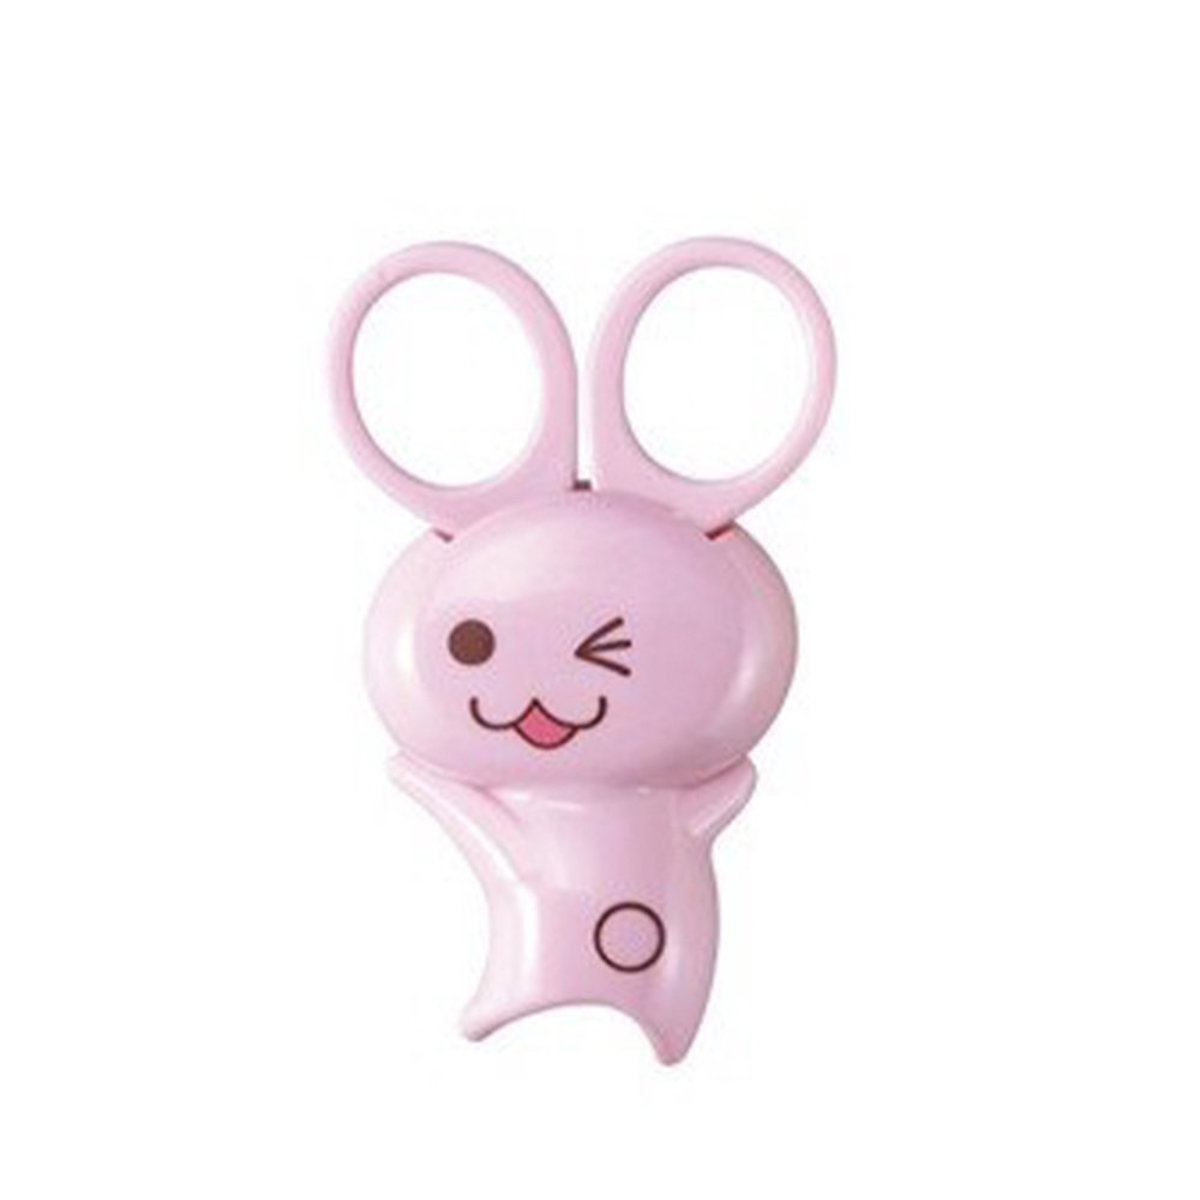 Food Scissor (Rabbit)[Parallel Import](Clearance item)